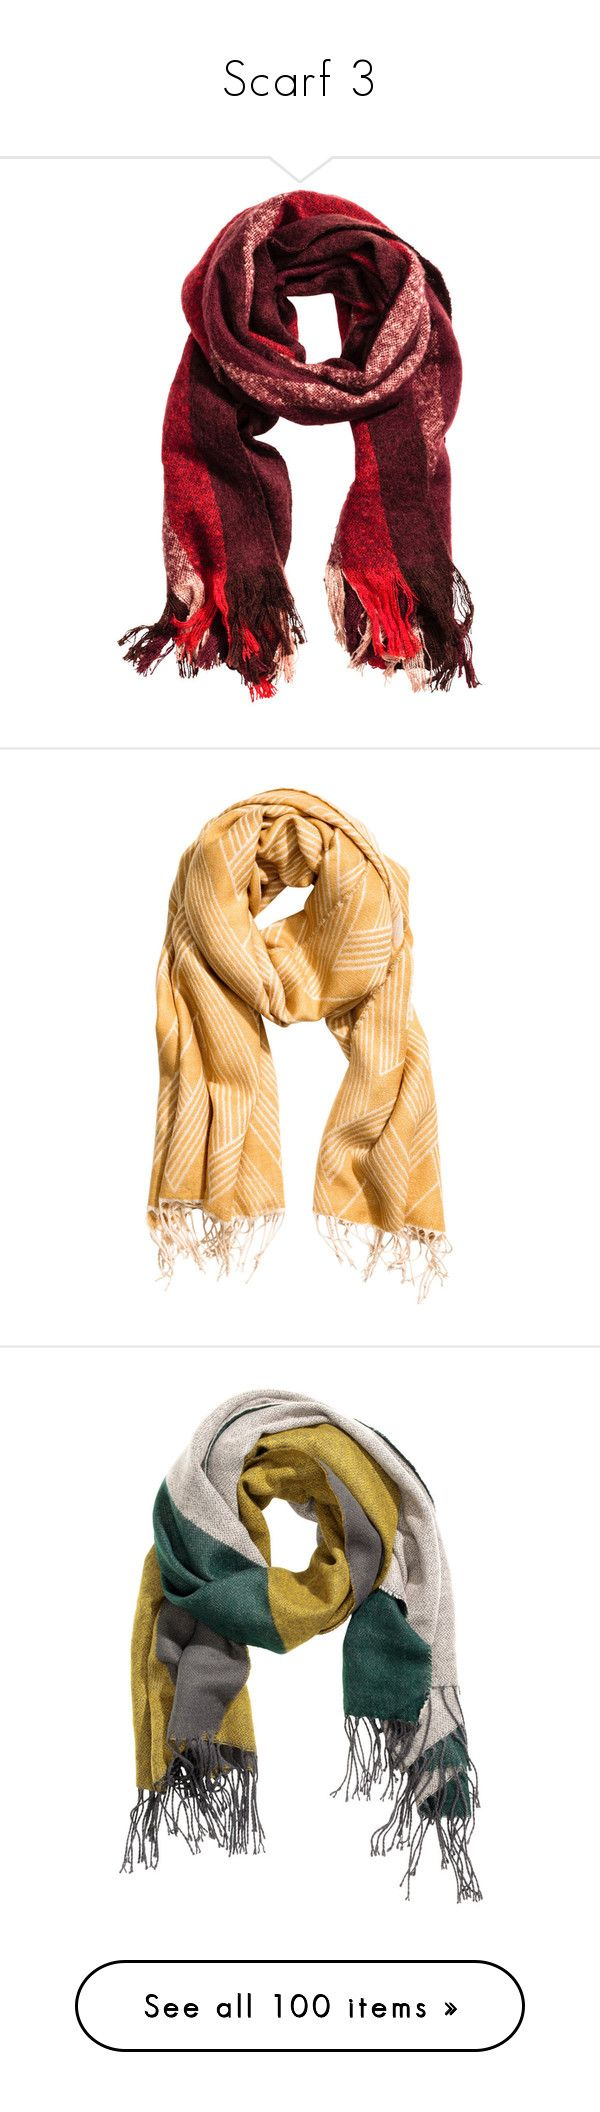 """""""Scarf 3"""" by laumariborche on Polyvore featuring accessories, scarves, fringe shawl, fringe scarves, yellow scarves, print scarves, yellow shawl, woven scarves, striped scarves y pink shawl"""